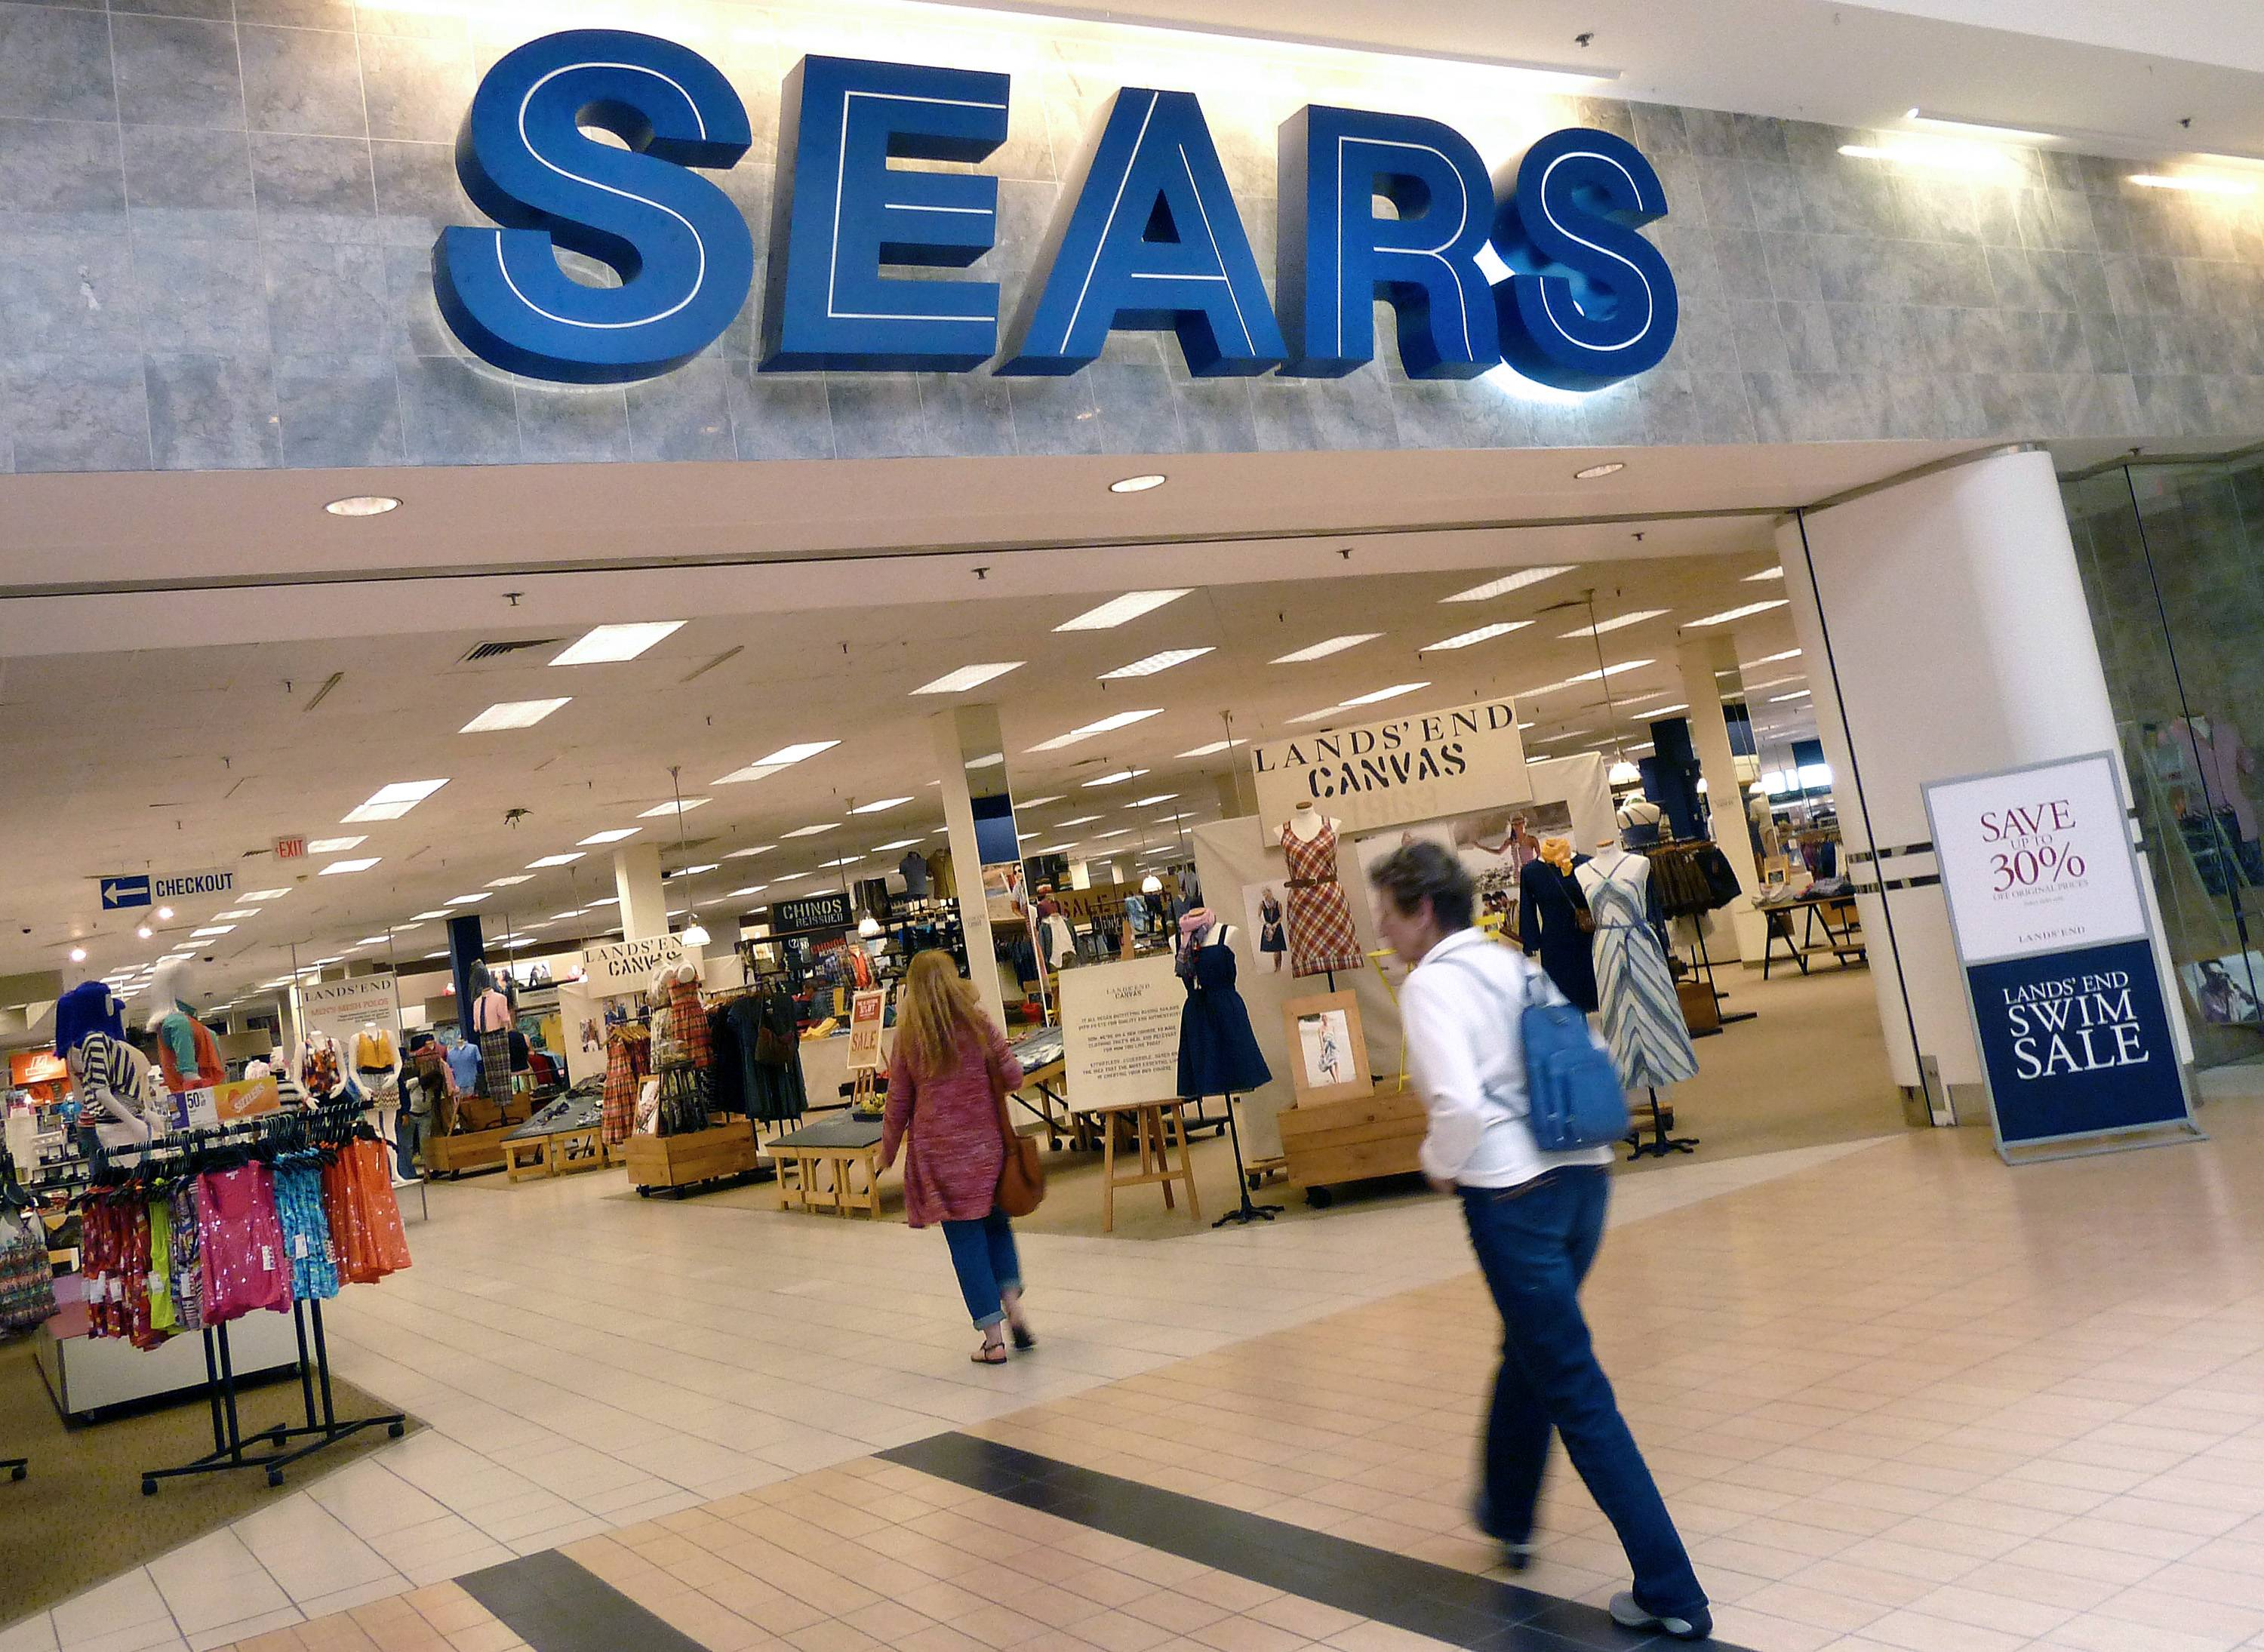 Hoffman Estates-based Sears Holdings Corp., the retailer controlled by billionaire hedge-fund manager Edward Lampert, posted a wider first-quarter loss amid a sales decline that has stretched into its seventh year.